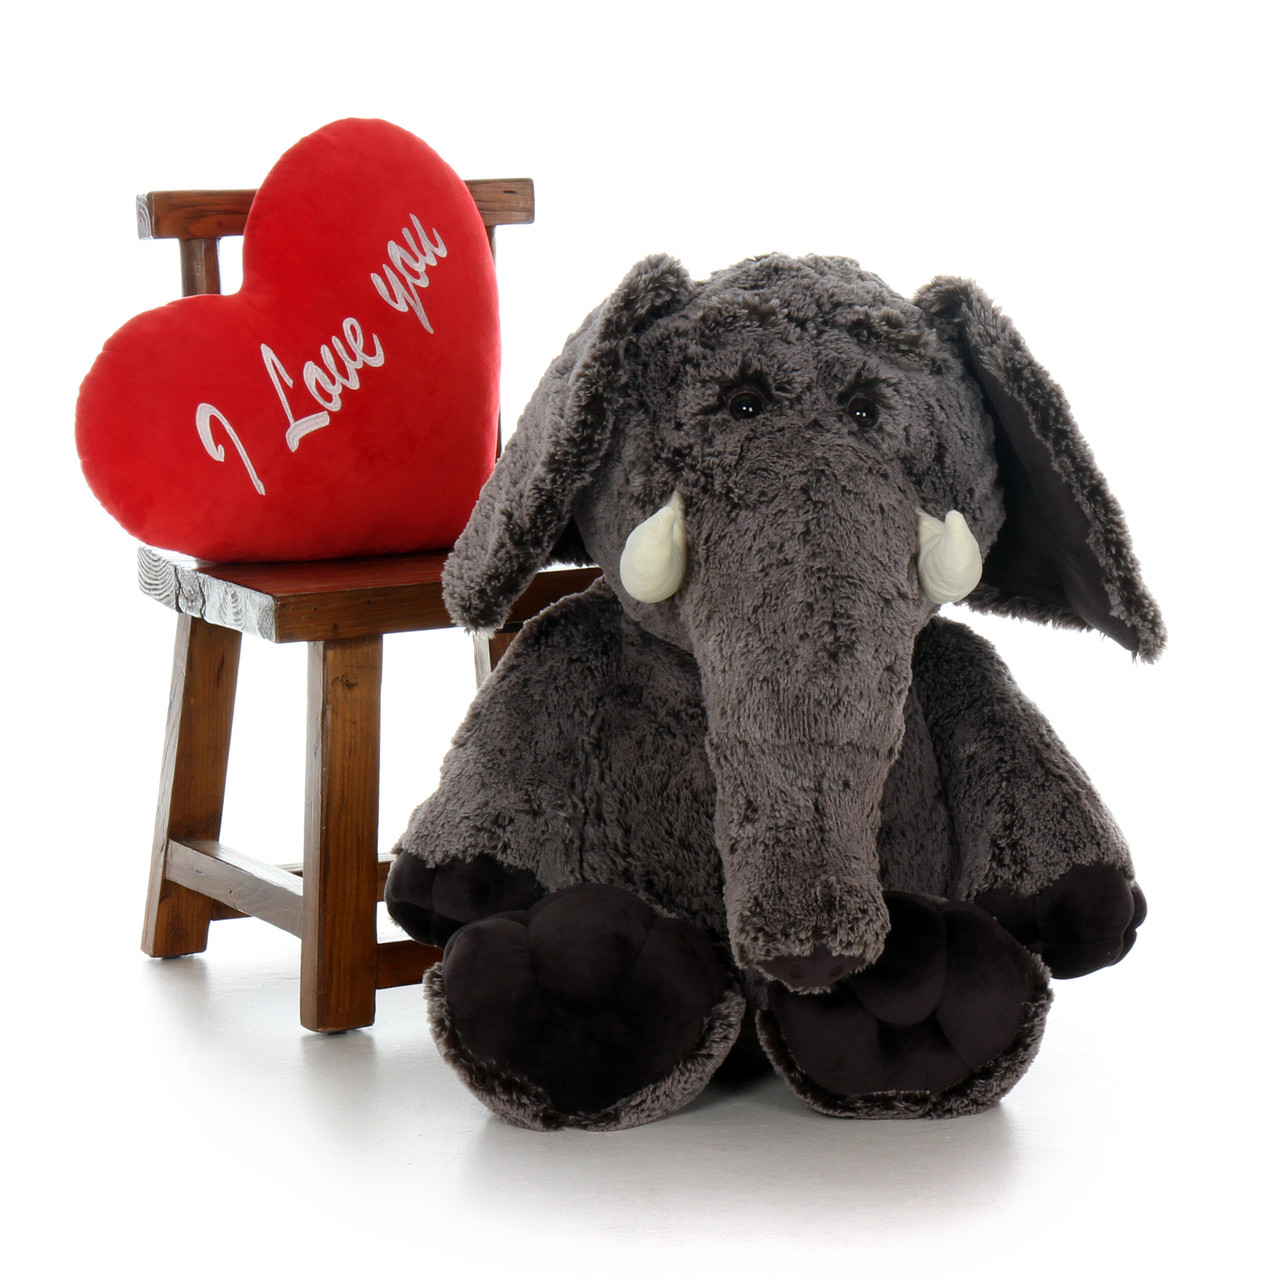 3ft Big Stuffed Elephant with Plush Red Heart from Giant Teddy